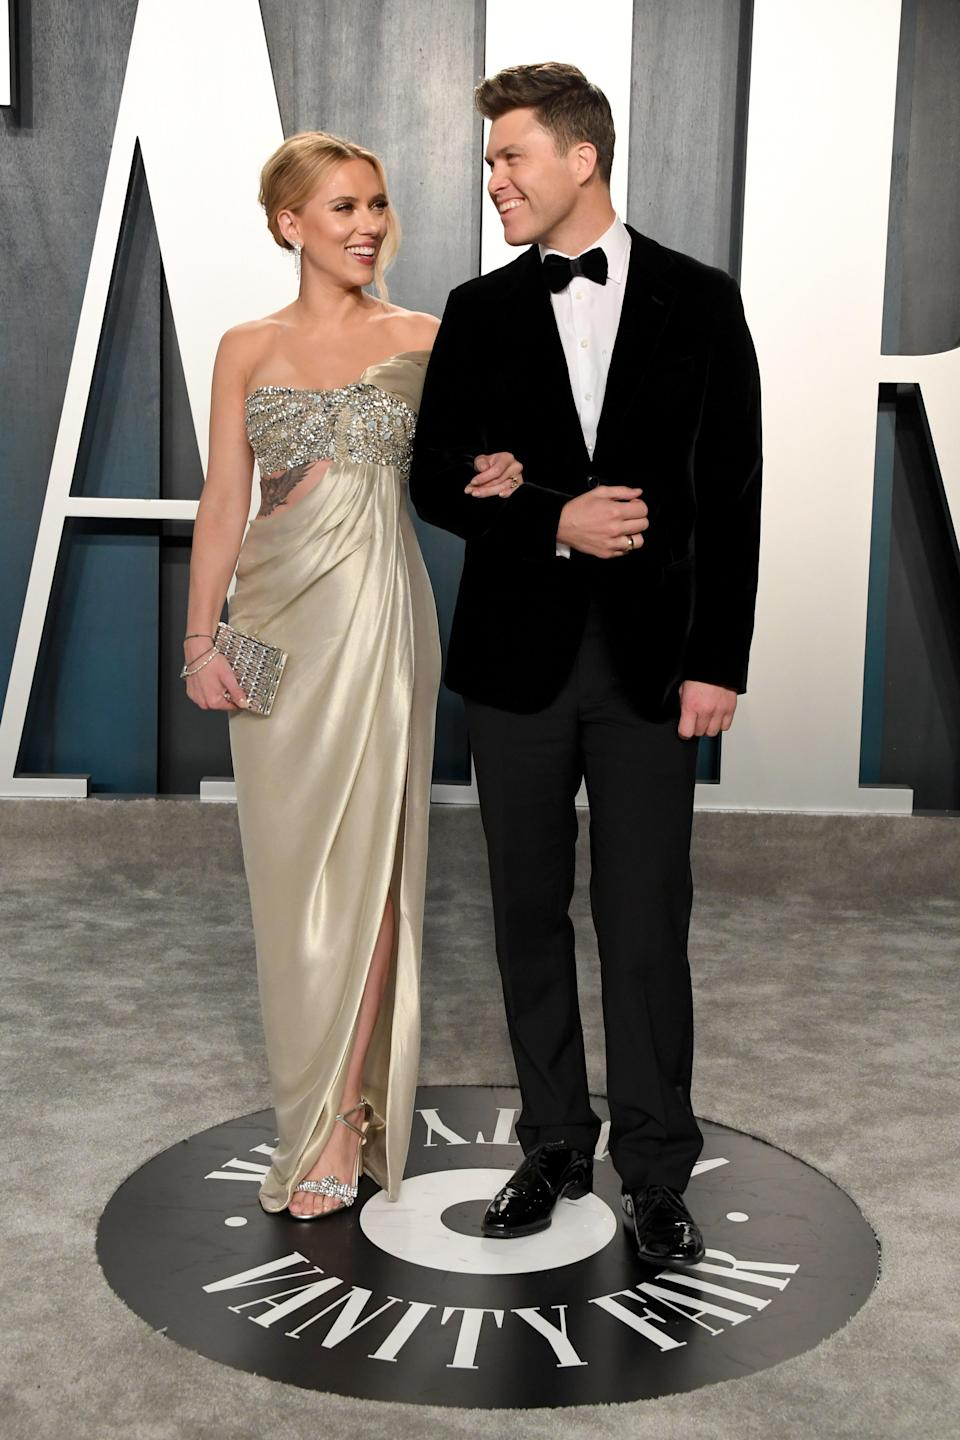 """They tied the knot in late October 2020, the organization Meals on Wheels confirmed. """"We're thrilled to break the news that Scarlett Johansson and Colin Jost were married over the weekend in an intimate ceremony with their immediate family and love ones, following COVID-19 safety precautions as directed by the CDC,"""" the org posted to Instagram. """"Their wedding wish is to help make a difference for vulnerable older adults during this difficult time by supporting <a href=""""https://www.instagram.com/mealsonwheelsamerica/"""" rel=""""nofollow noopener"""" target=""""_blank"""" data-ylk=""""slk:@mealsonwheelsamerica"""" class=""""link rapid-noclick-resp"""">@mealsonwheelsamerica</a>."""""""